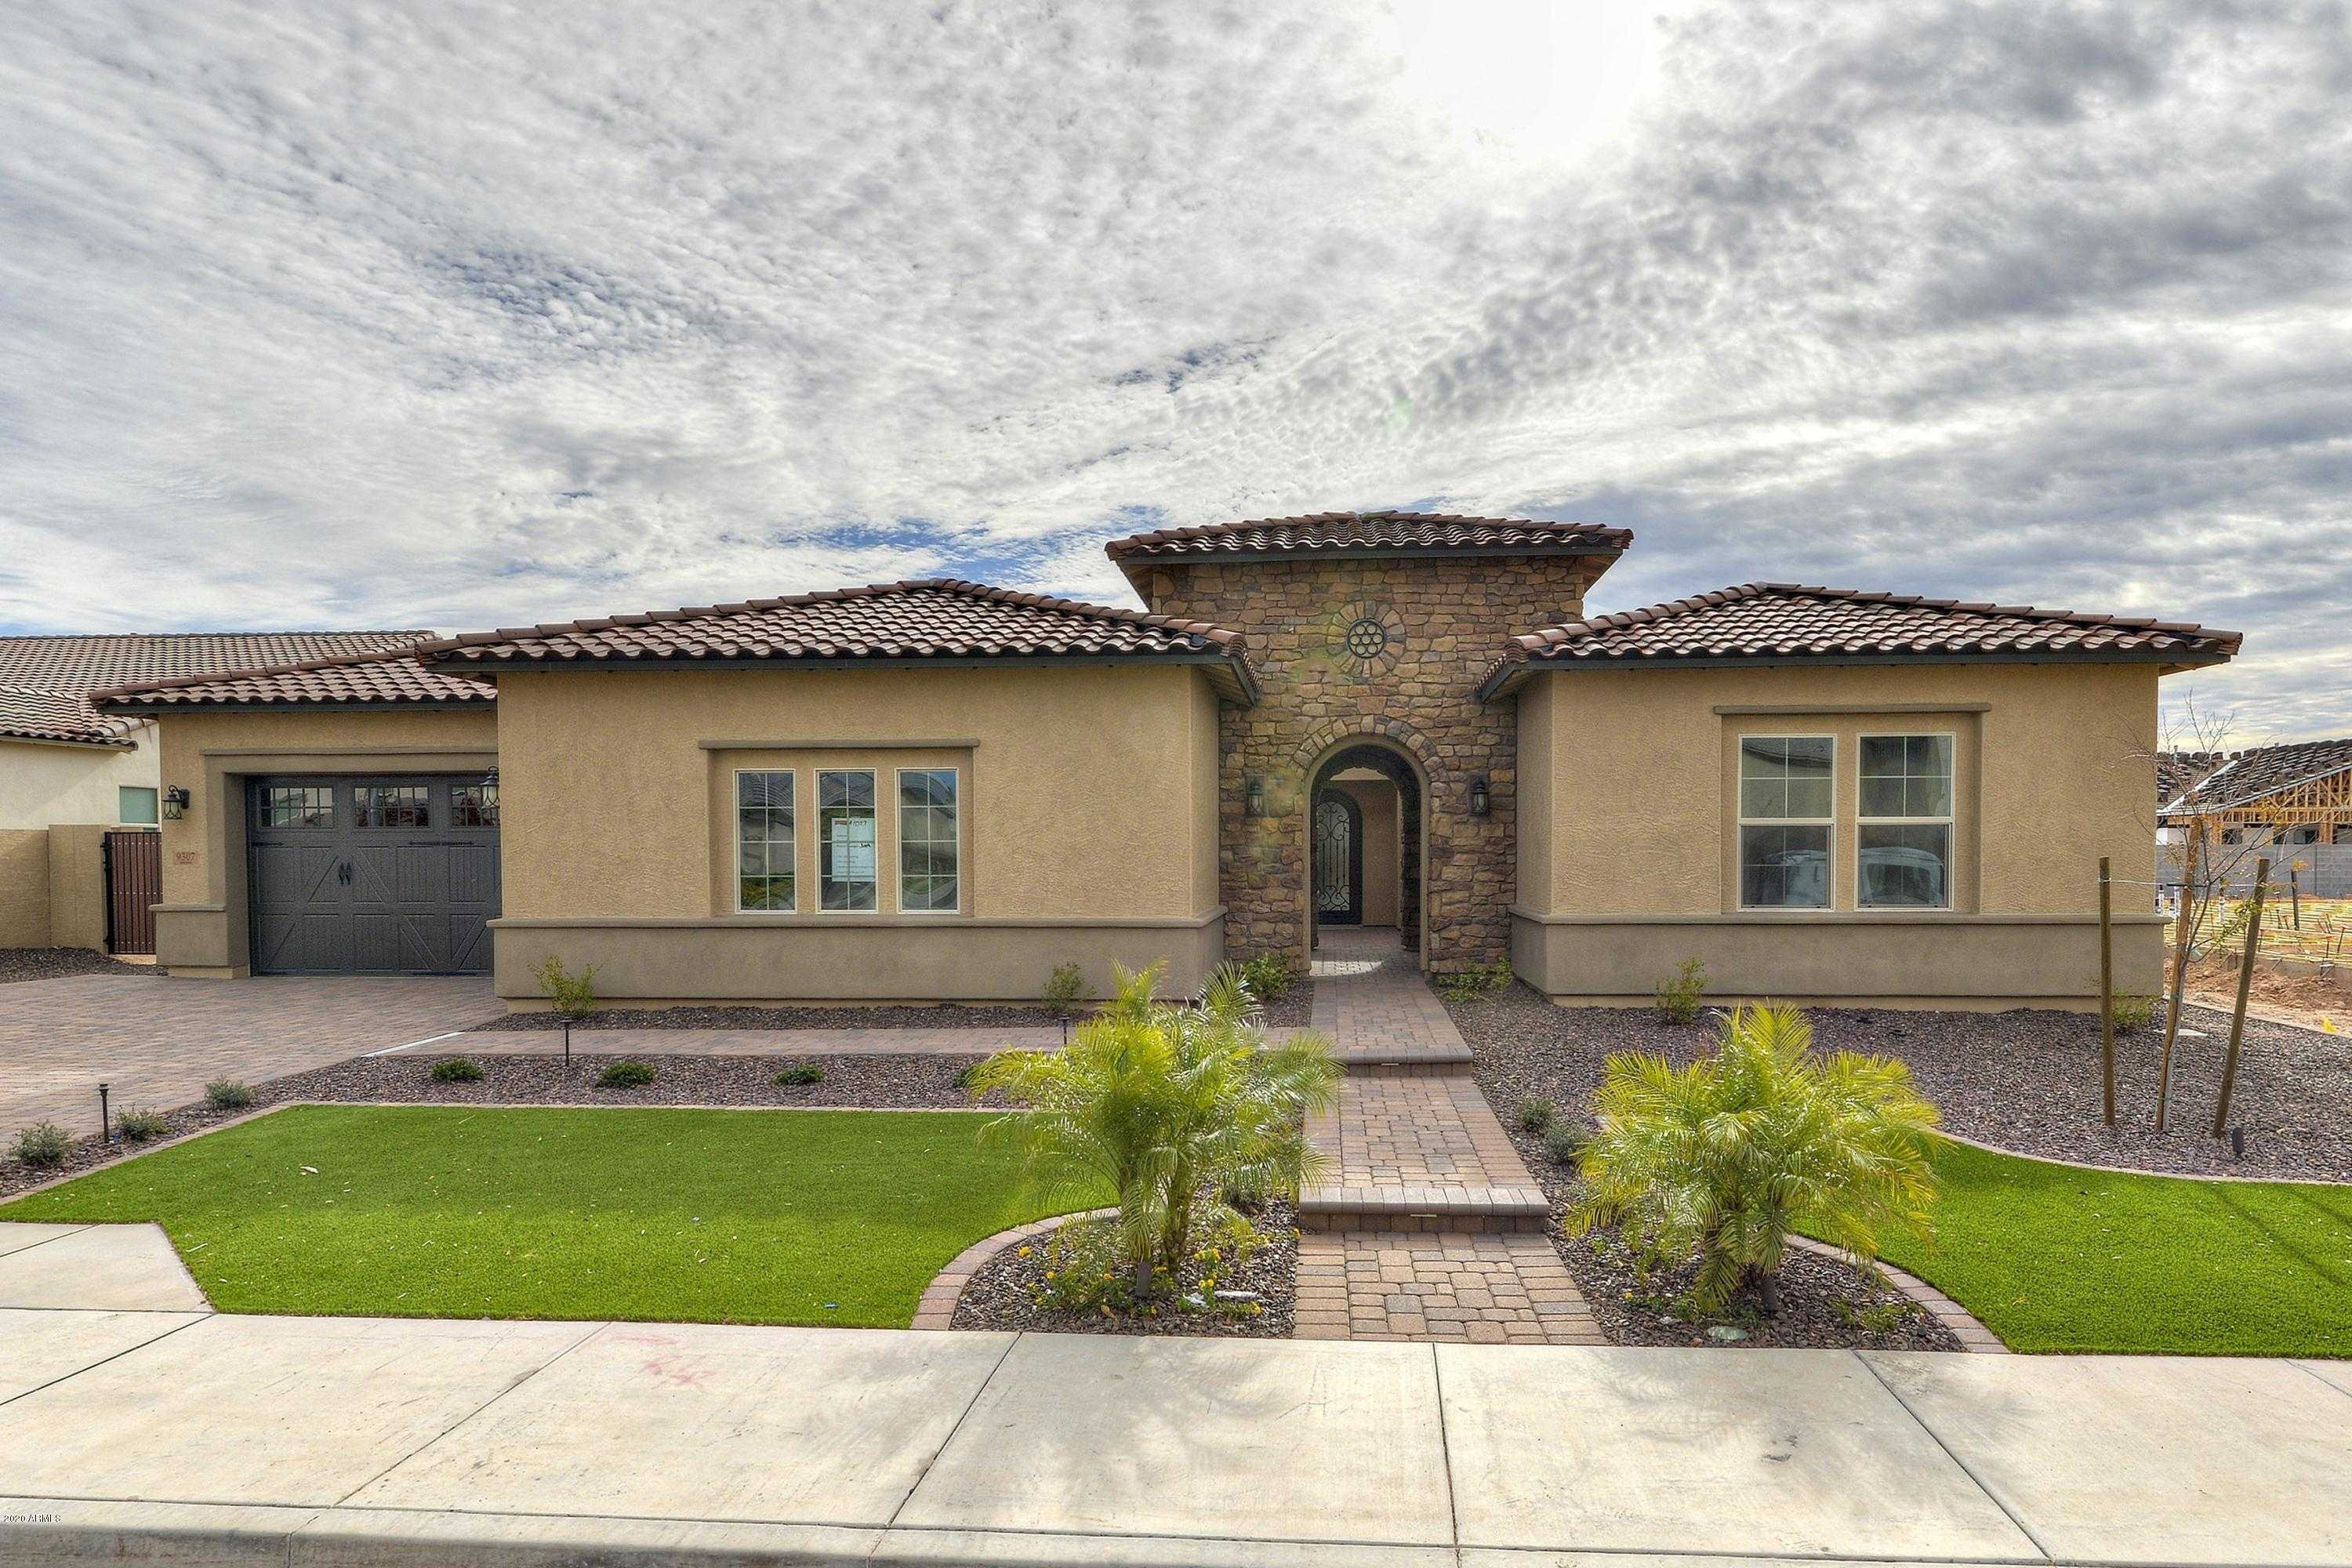 $793,153 - 4Br/5Ba - Home for Sale in Meadows Parcels 1 And 3 Phase 1, Peoria